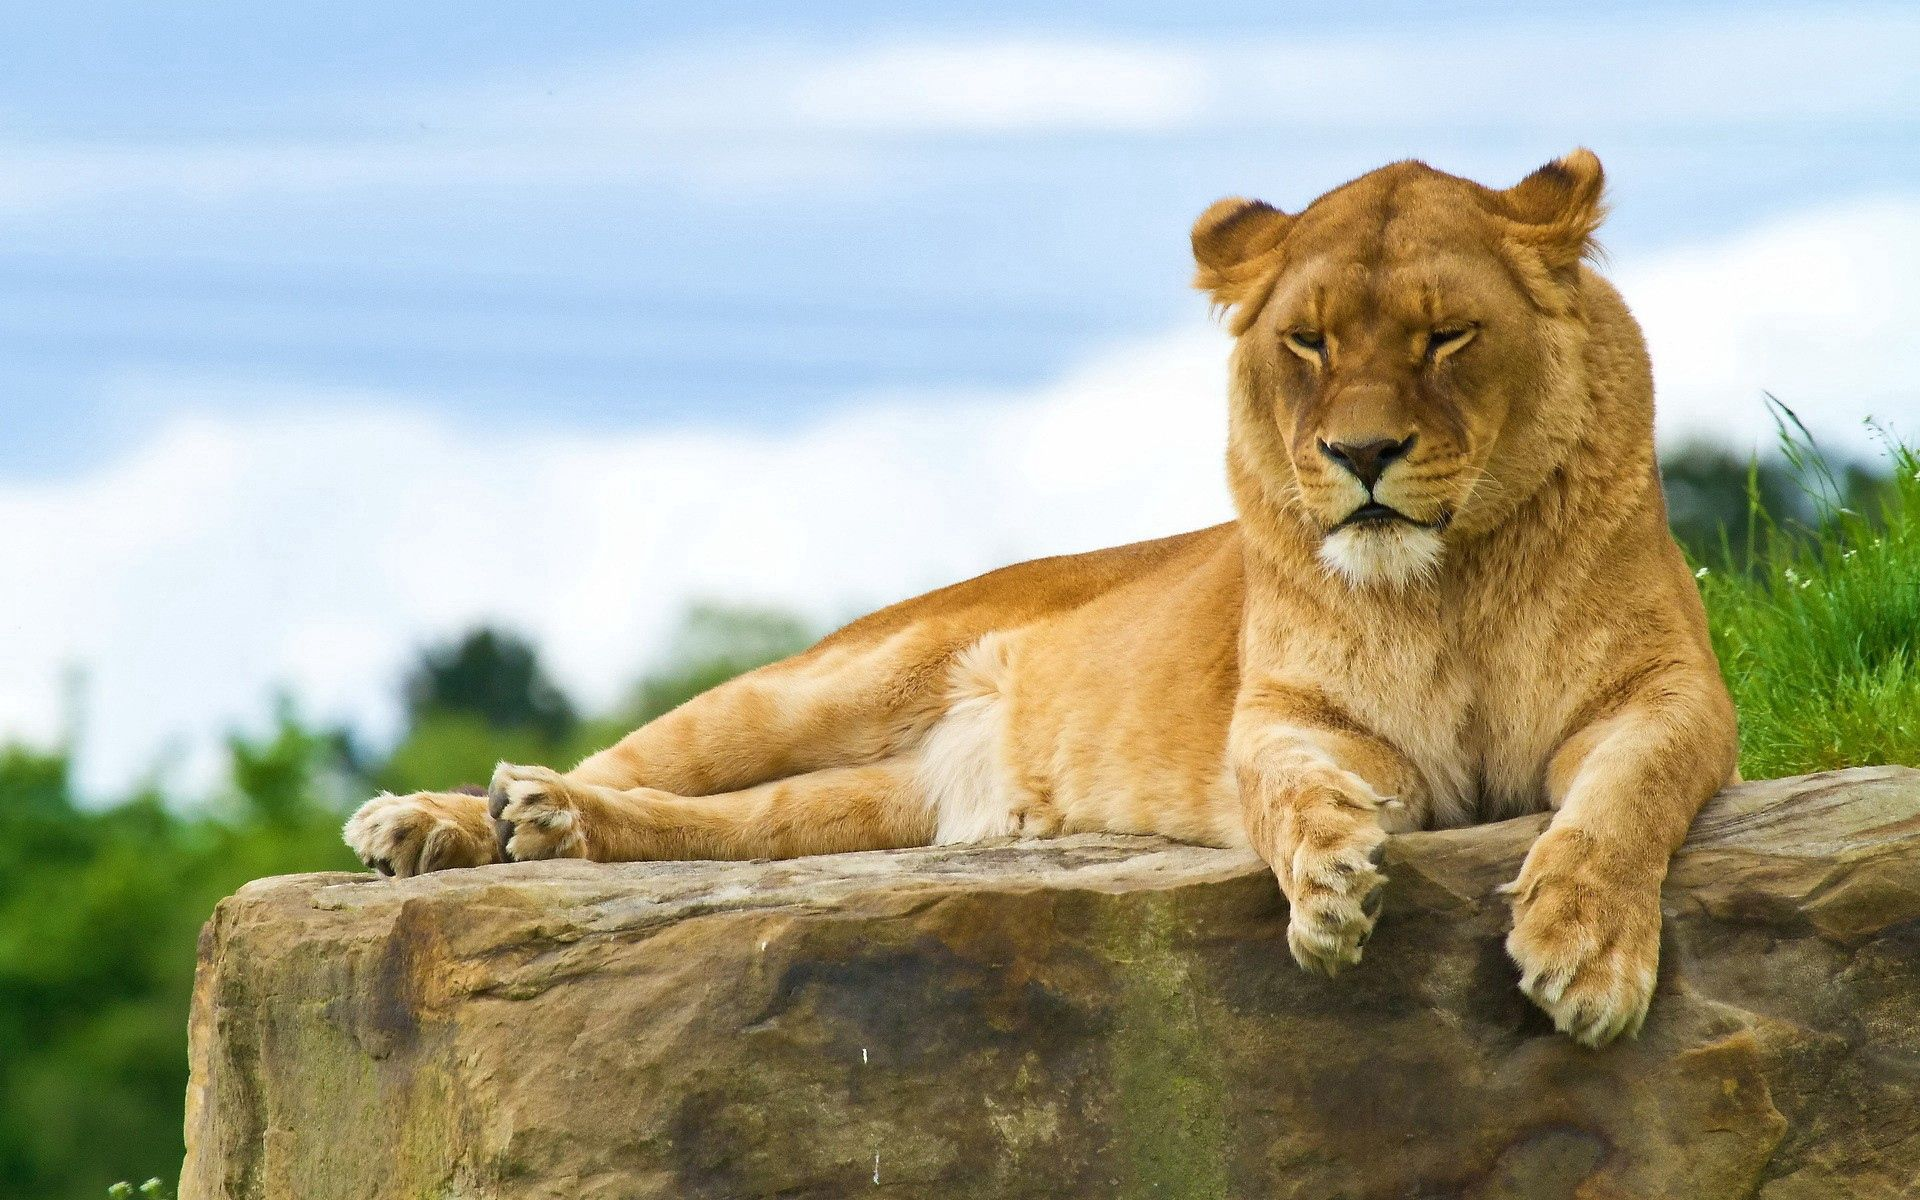 117721 download wallpaper Animals, Lion, To Lie Down, Lie, Summer, King Of Beasts, King Of The Beasts screensavers and pictures for free